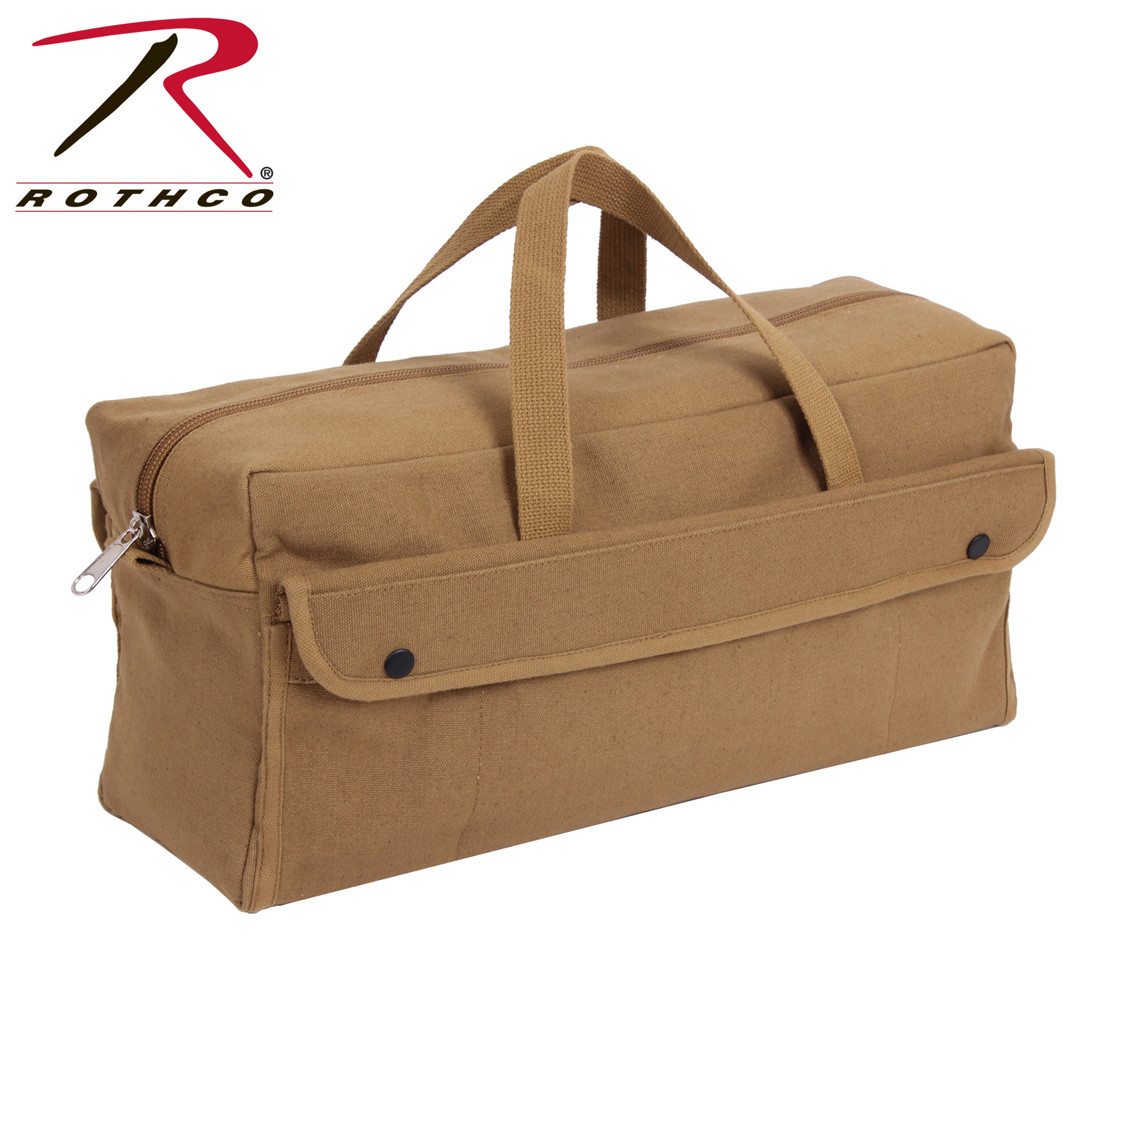 Shop Coyote Brown Canvas Tool Bags - Fatigues Army Navy Gear 1ce4d7bcb3e0d